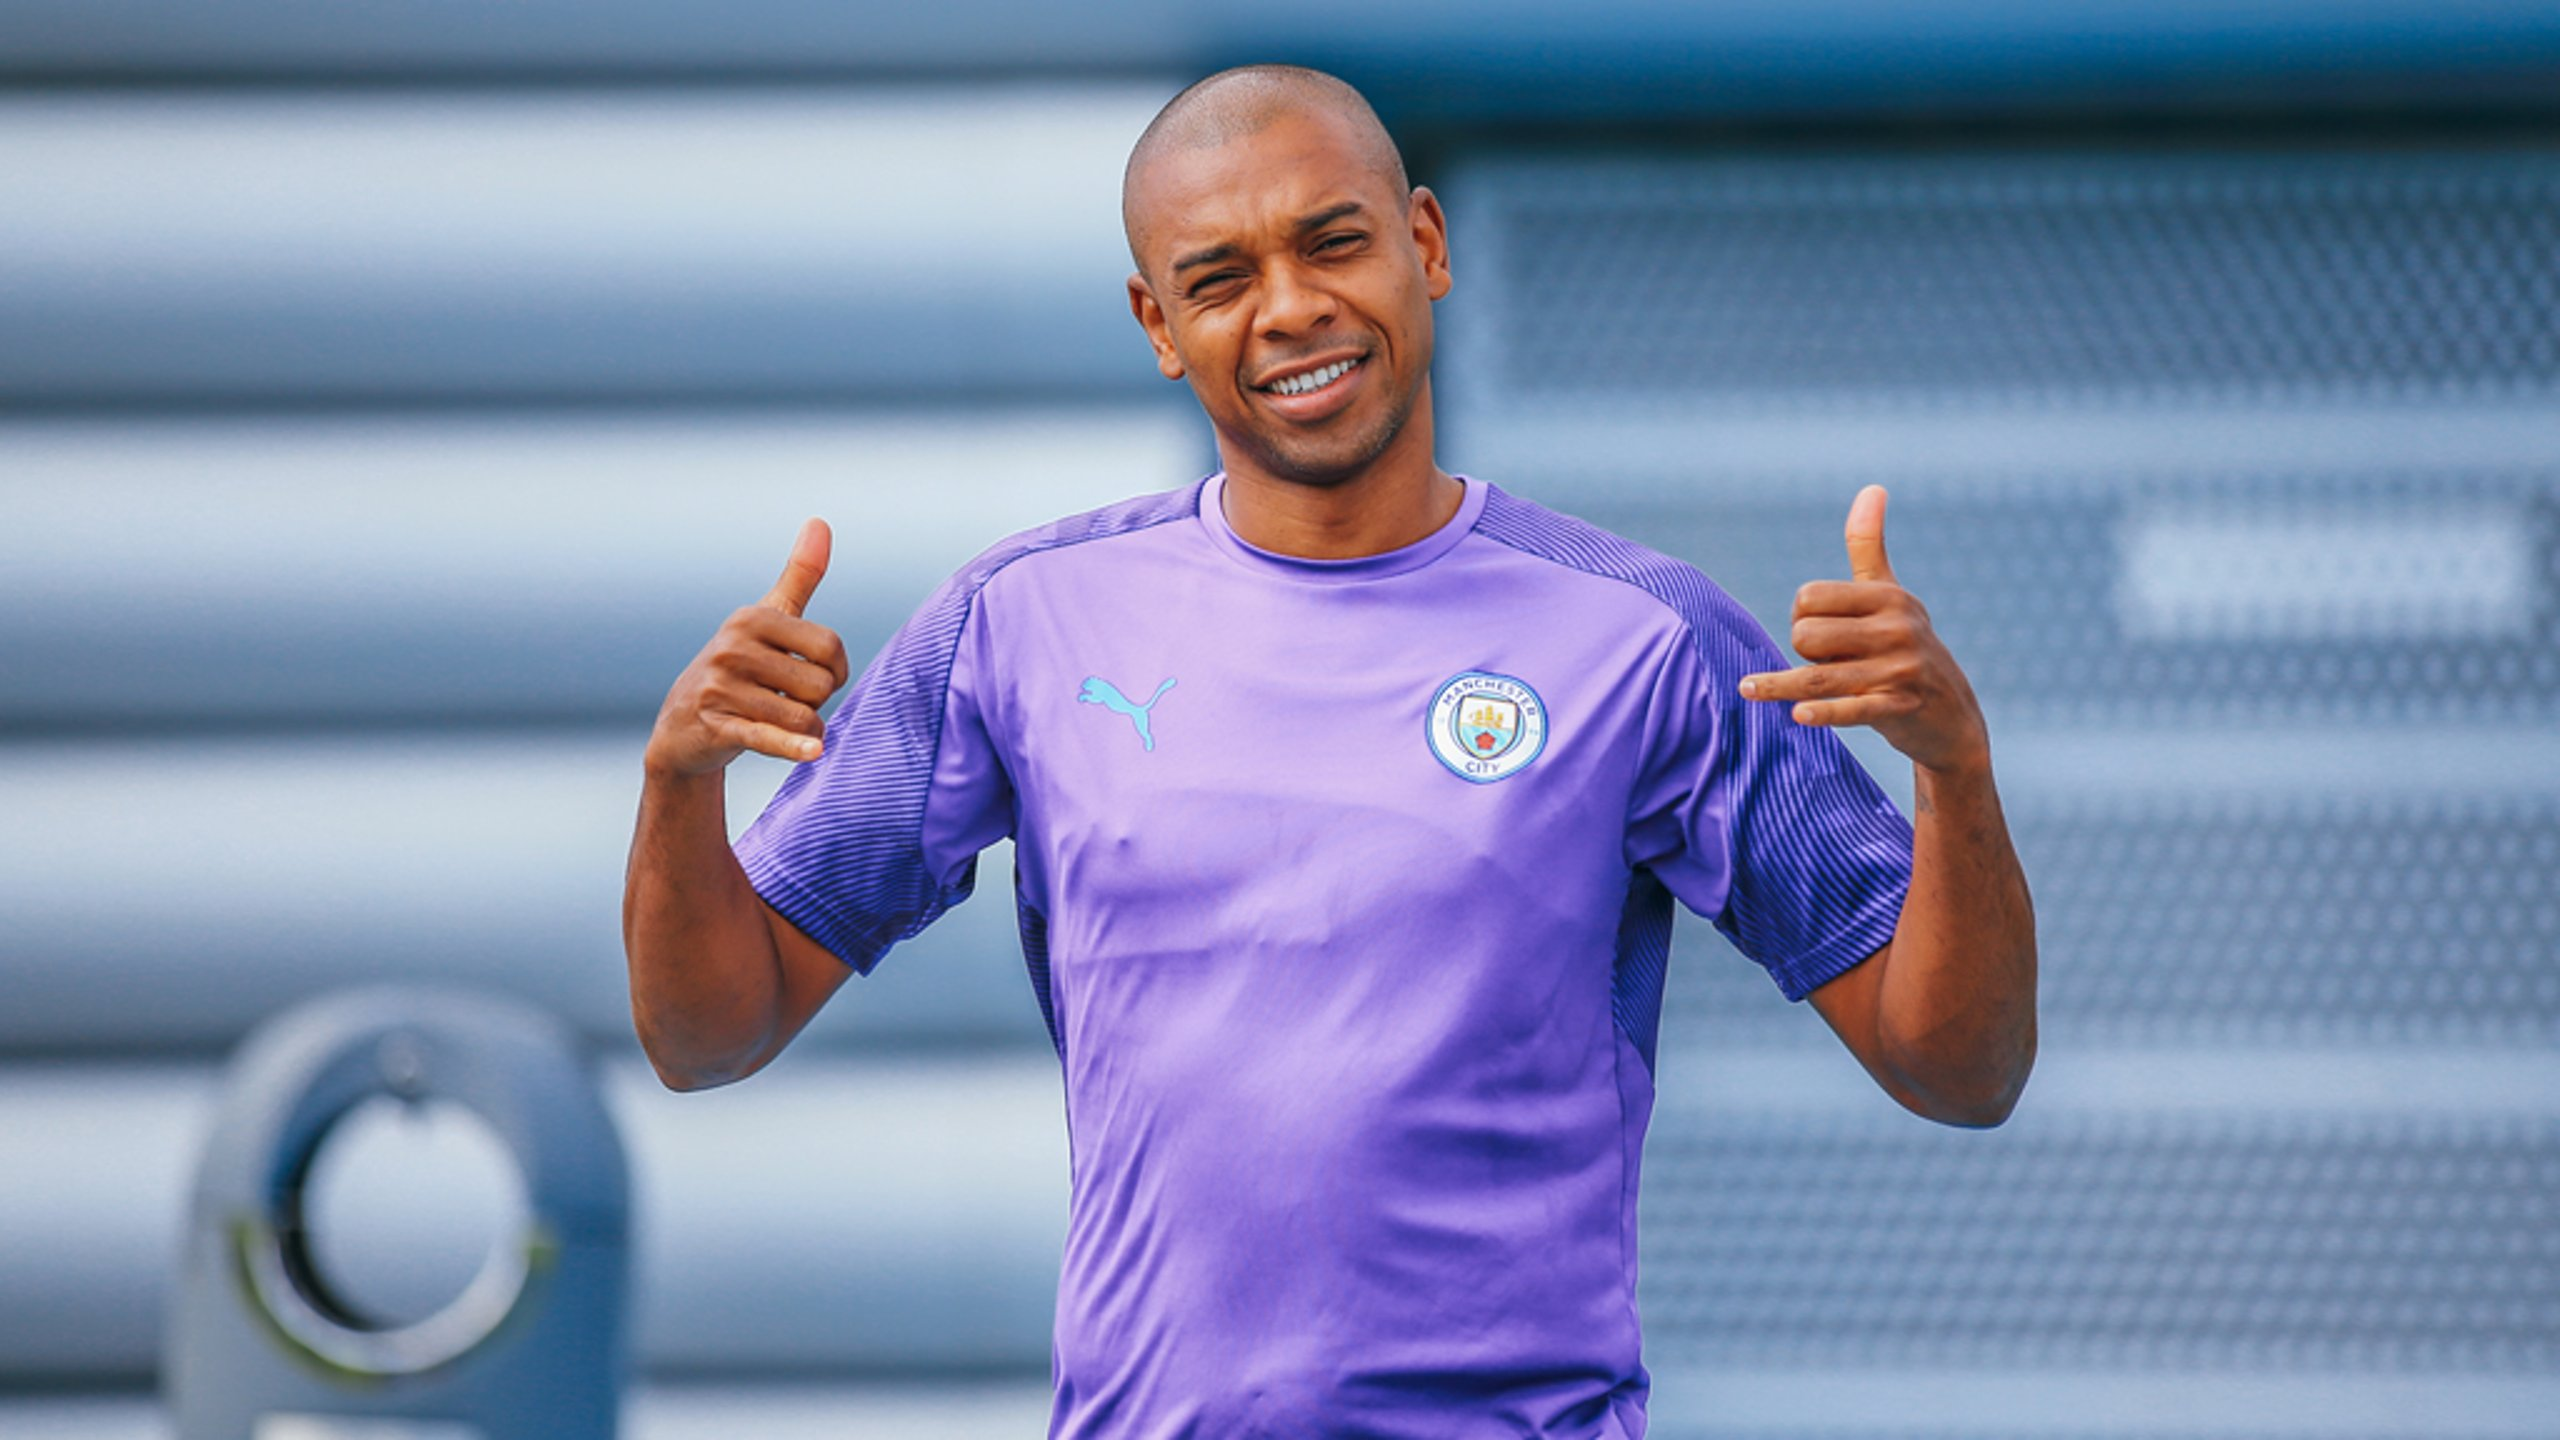 SAY CHEESE: Fernandinho gets ready for action